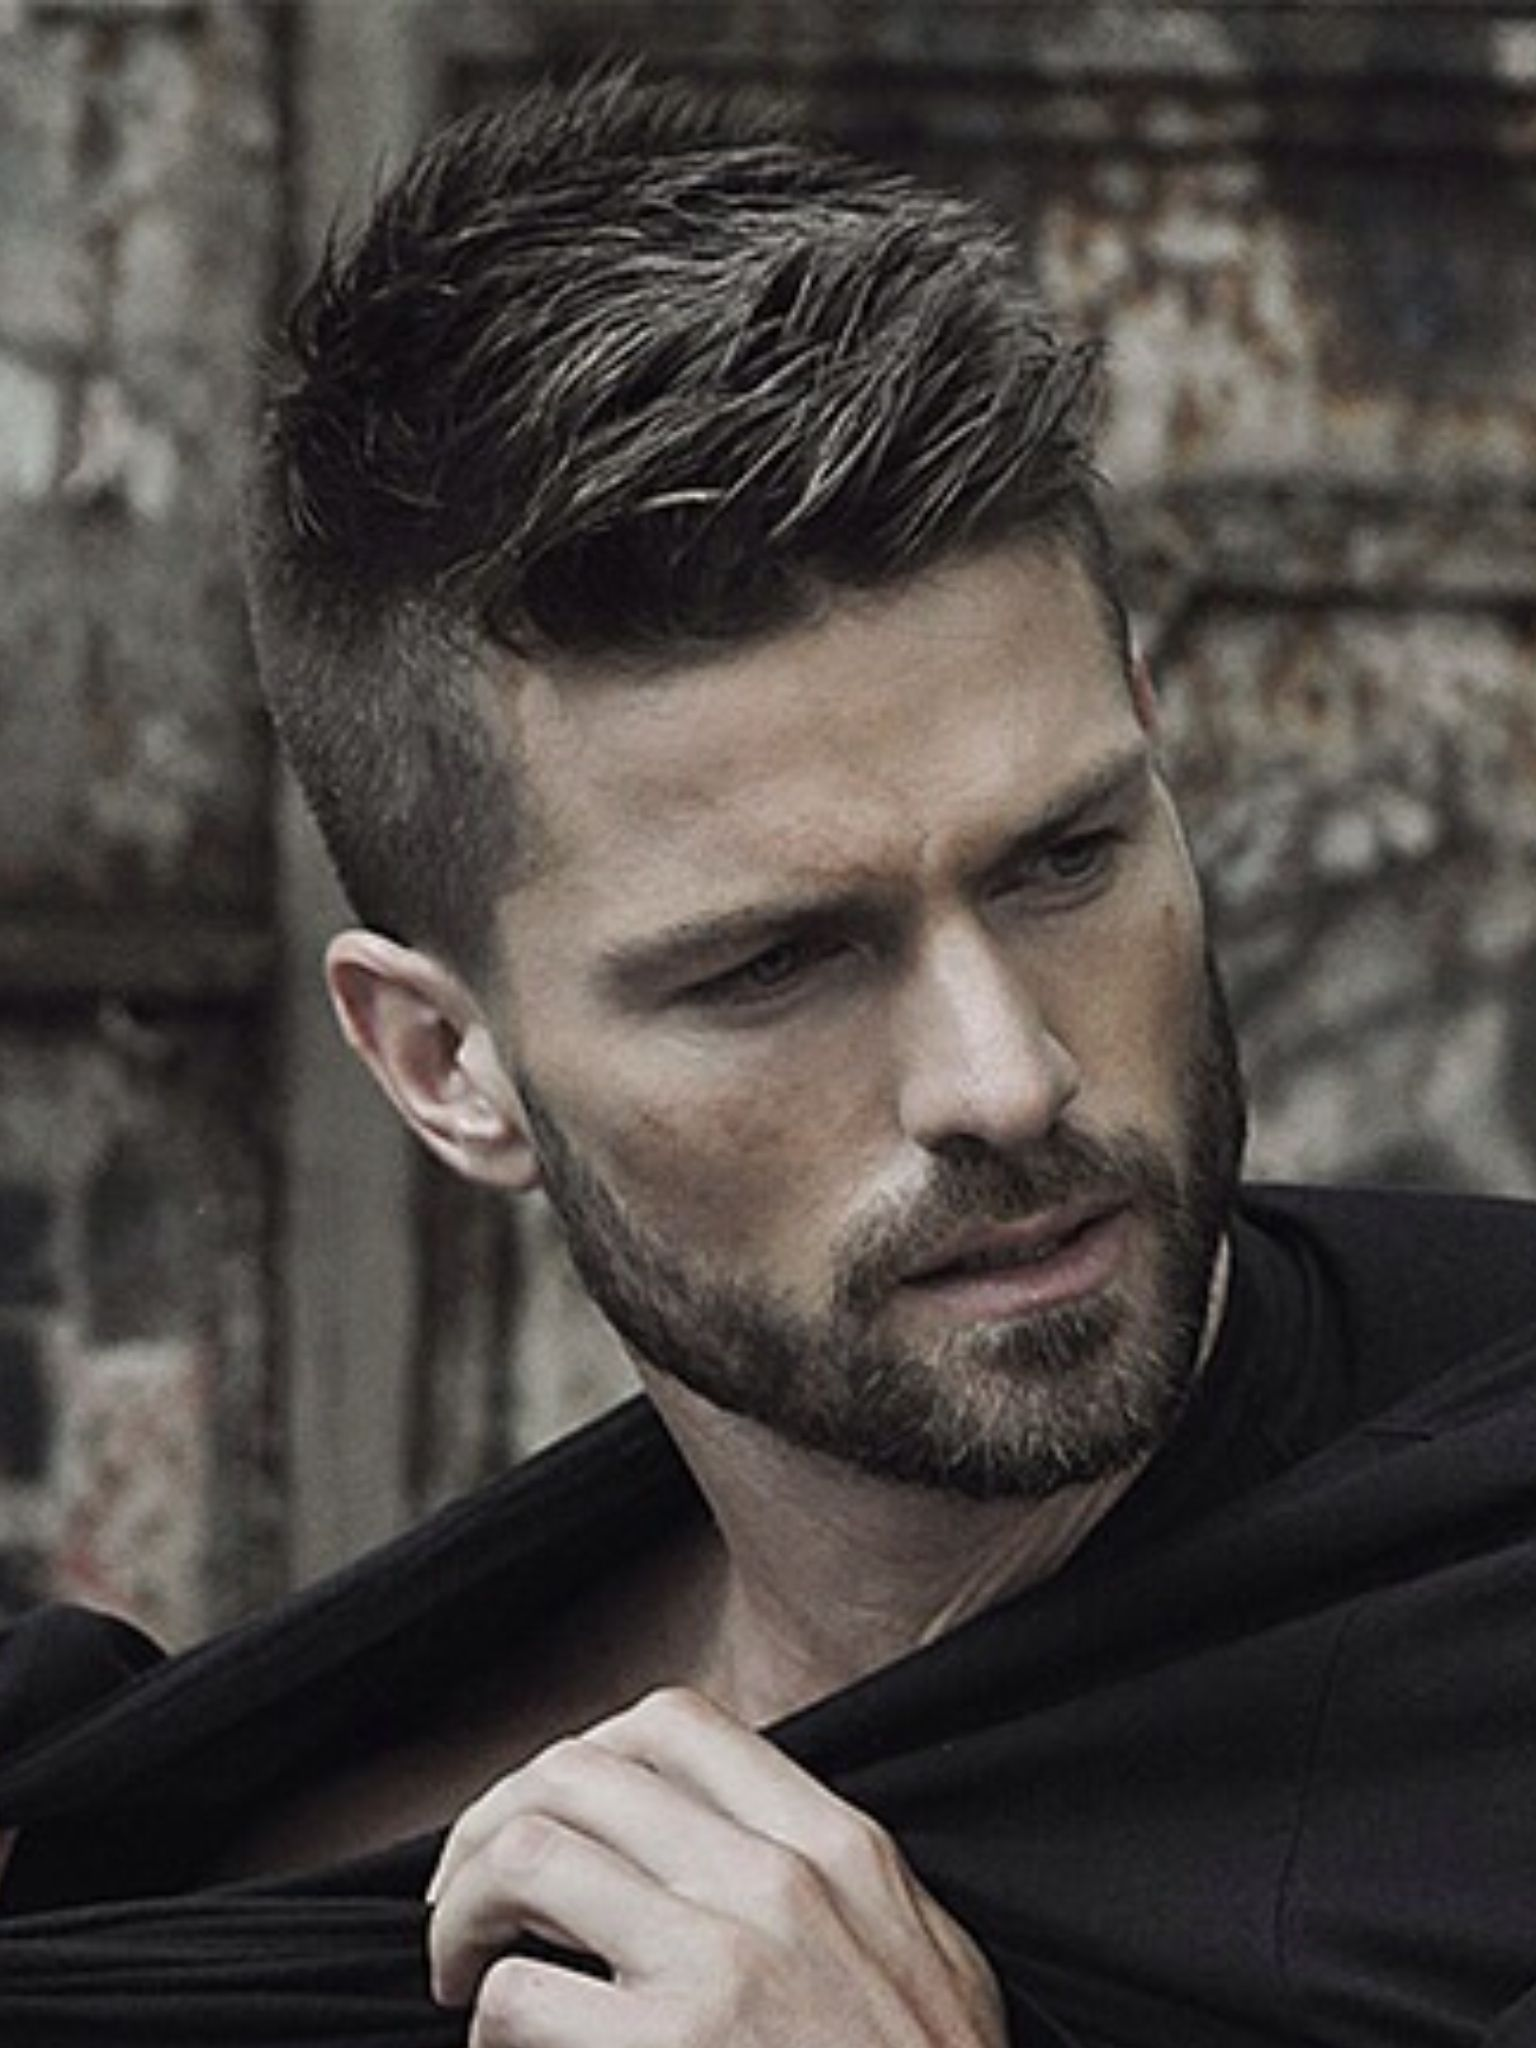 how to style short hair men : discover the best ways to